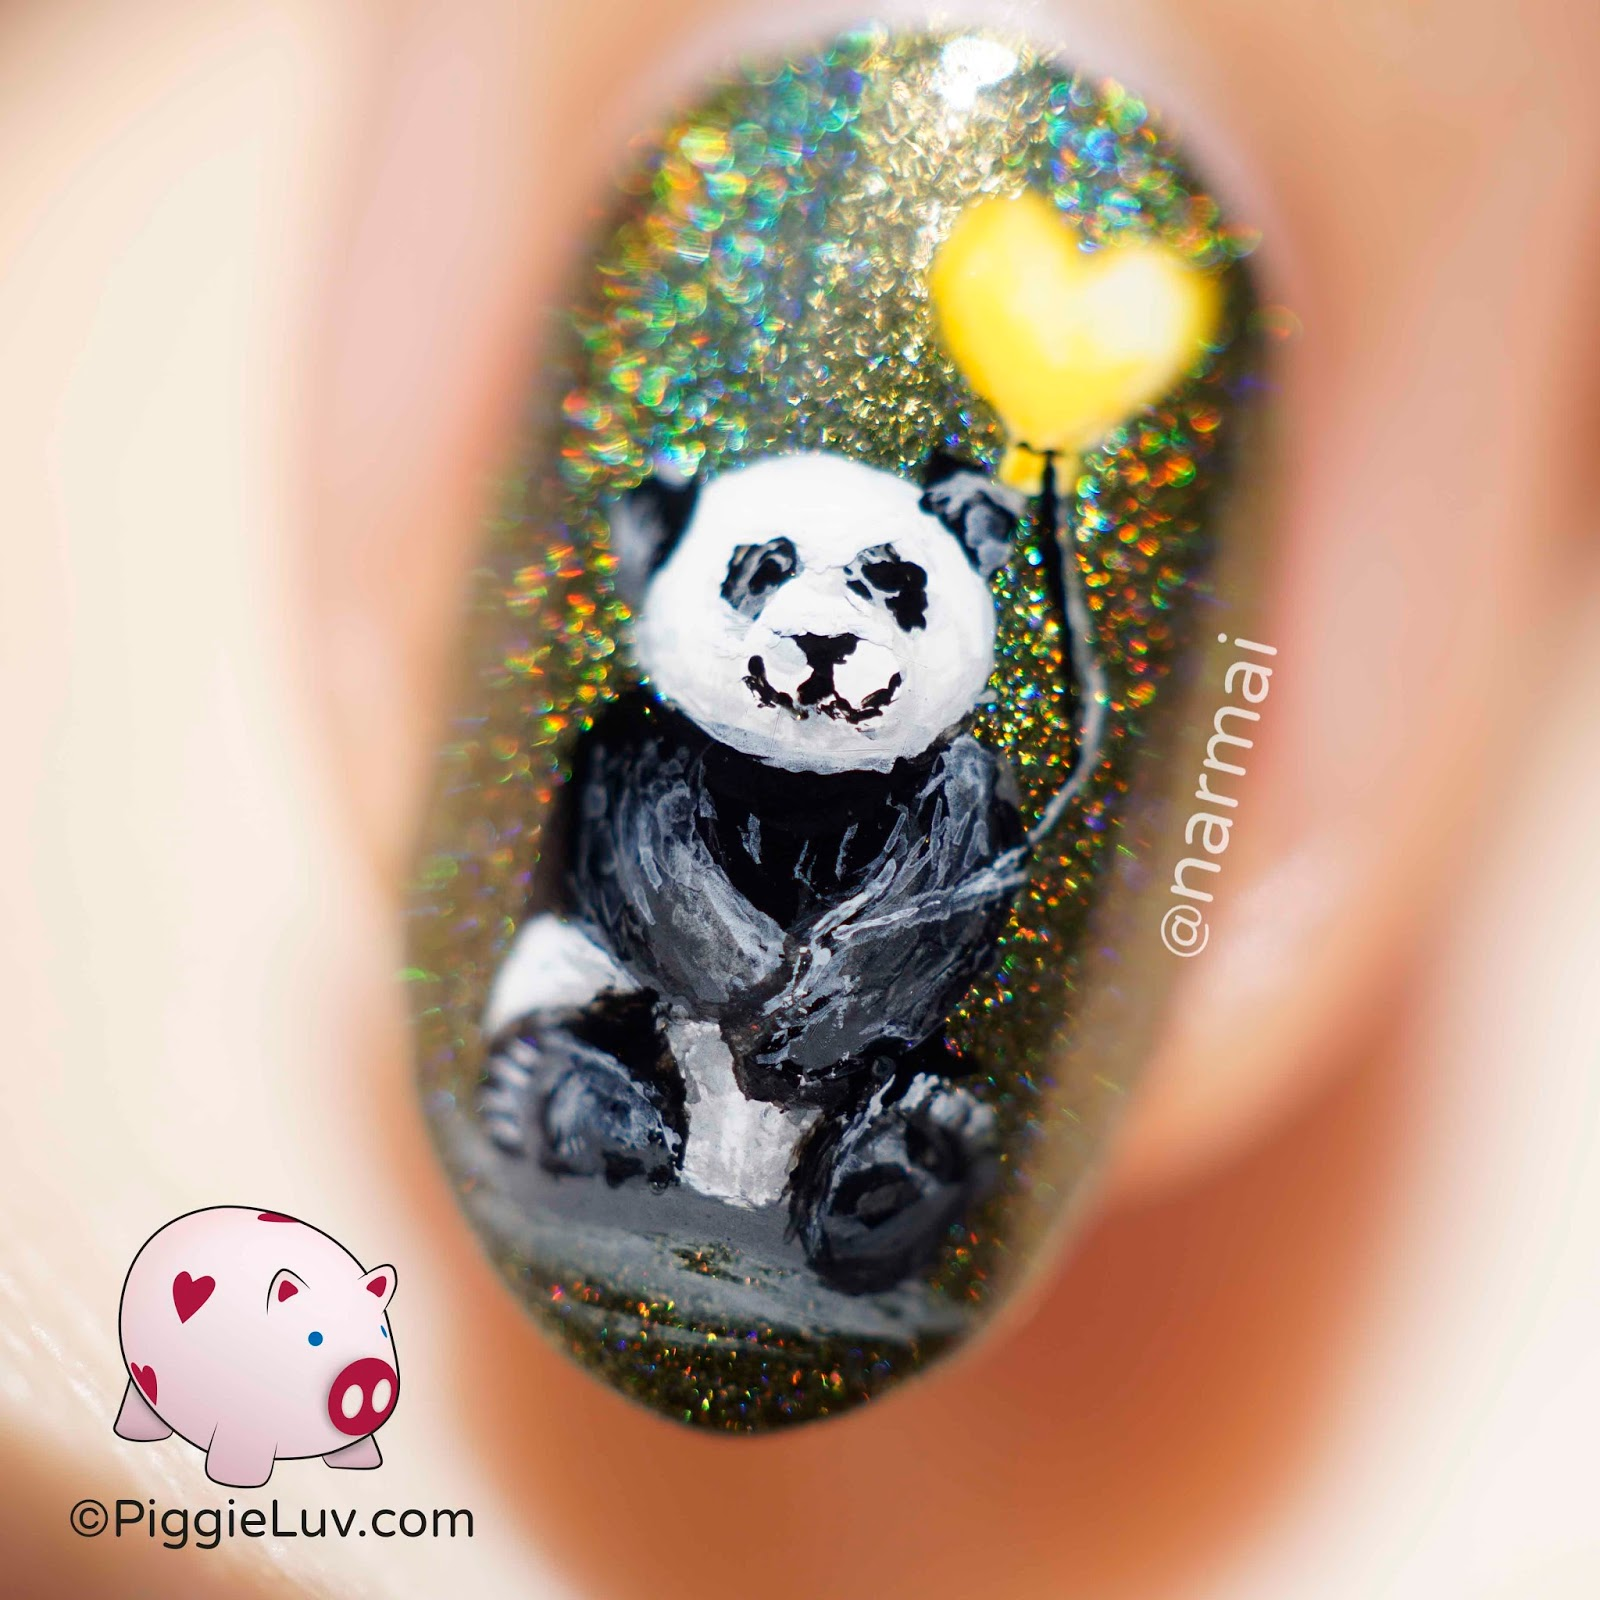 Piggieluv little panda nail art this delicious holo base polish is superchic lacquer awkward turtle but there is nothing awkward about it 3 just heavenly holo and a deep olive shade prinsesfo Image collections